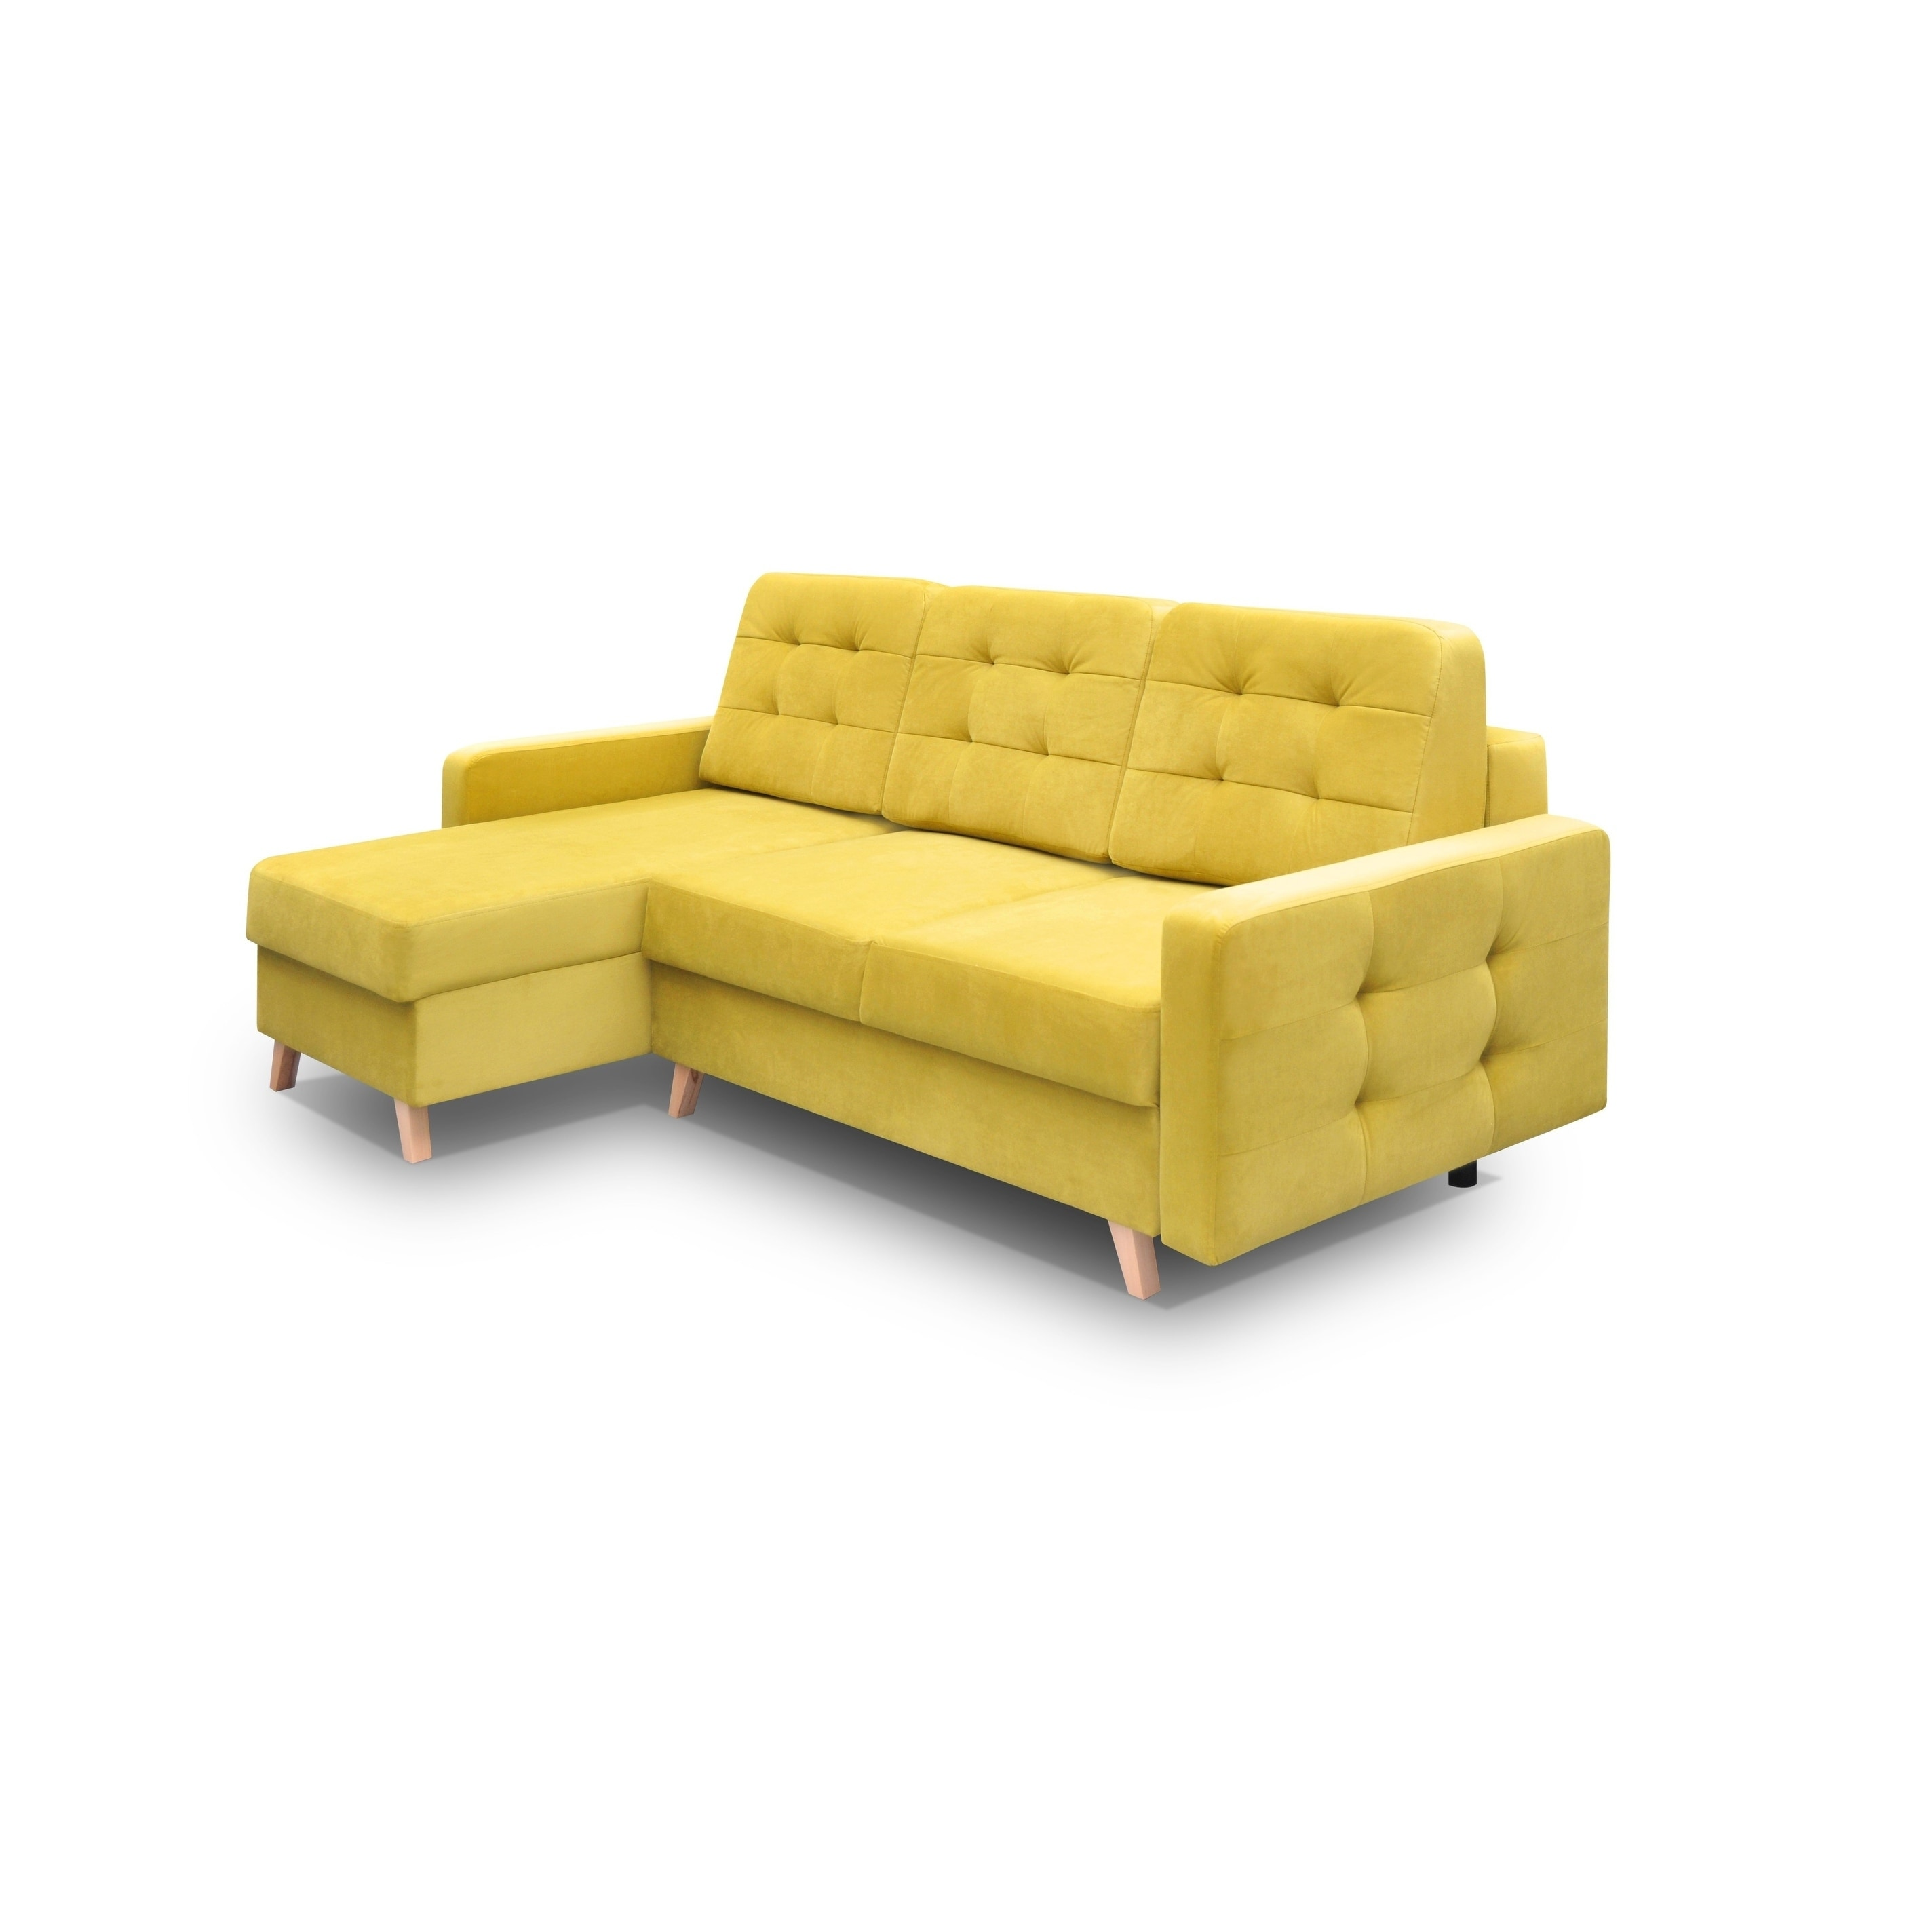 Awe Inspiring Vegas Futon Sectional Sofa Bed Queen Sleeper With Storage Onthecornerstone Fun Painted Chair Ideas Images Onthecornerstoneorg